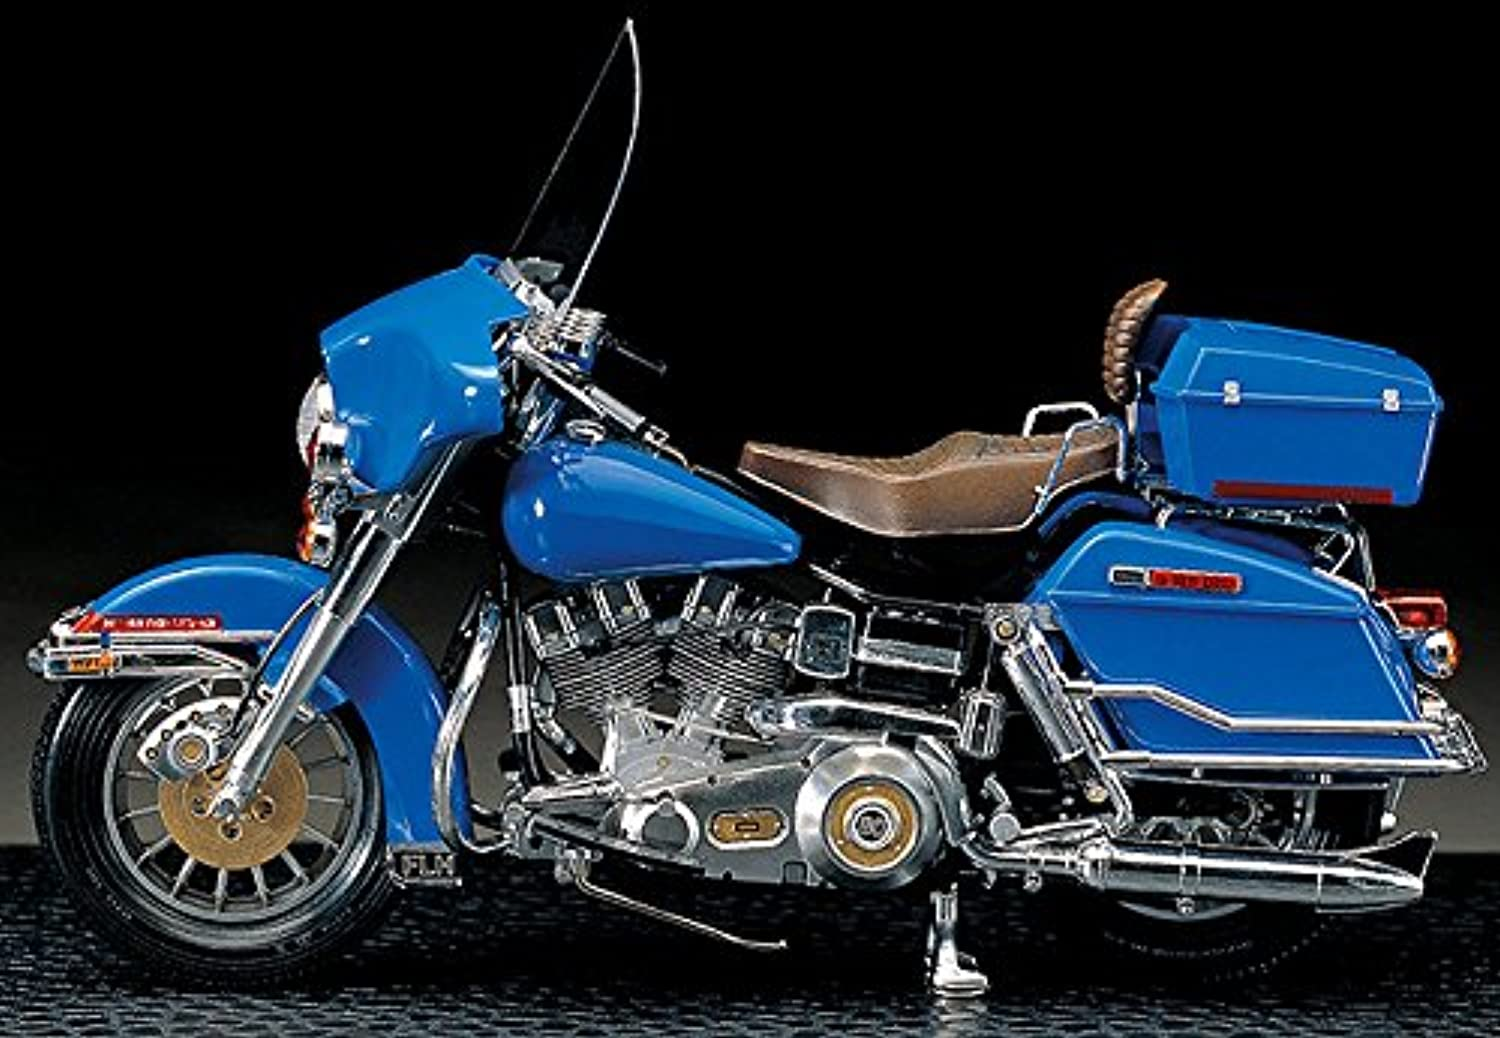 Academy 1 10 Harley Davidson Classic Model Kits Motorcycle Modeling Of Famous Motorcycle In The 7,80'S